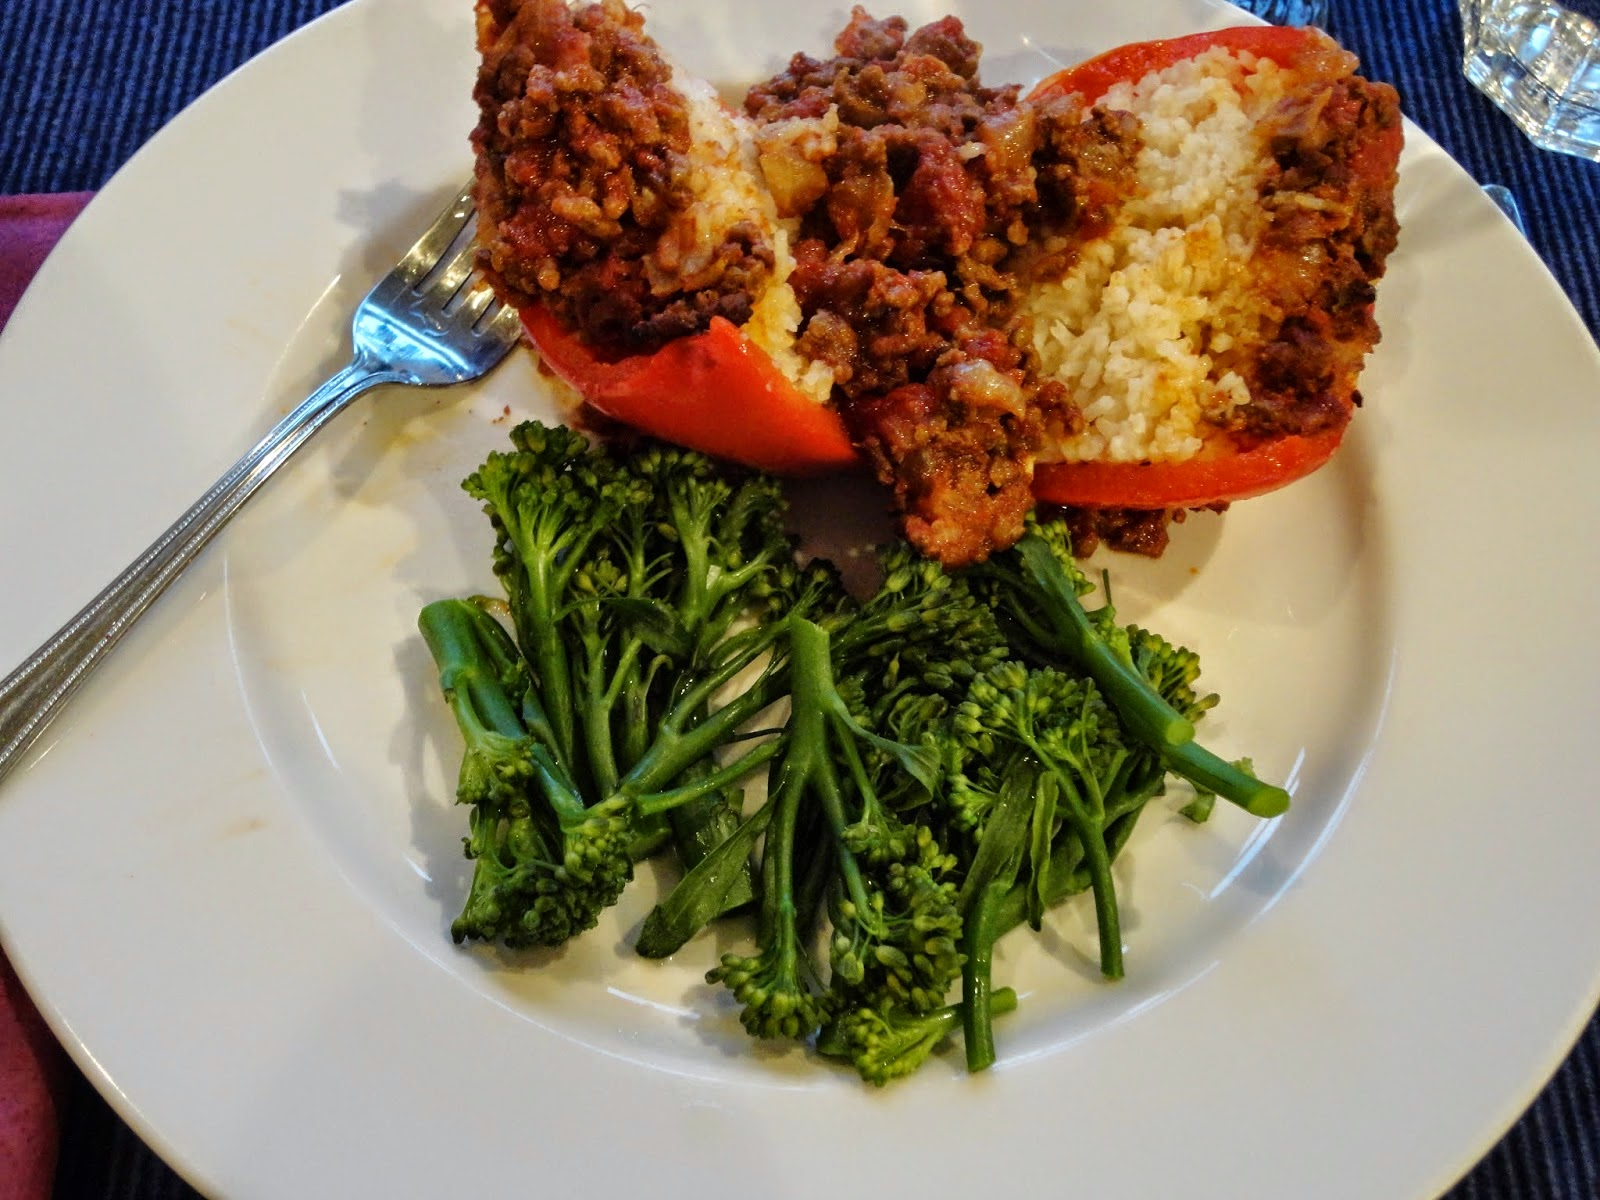 http://whoeverhasthemostfabric.blogspot.com/2014/04/family-supper-stuffed-peppers-with.html